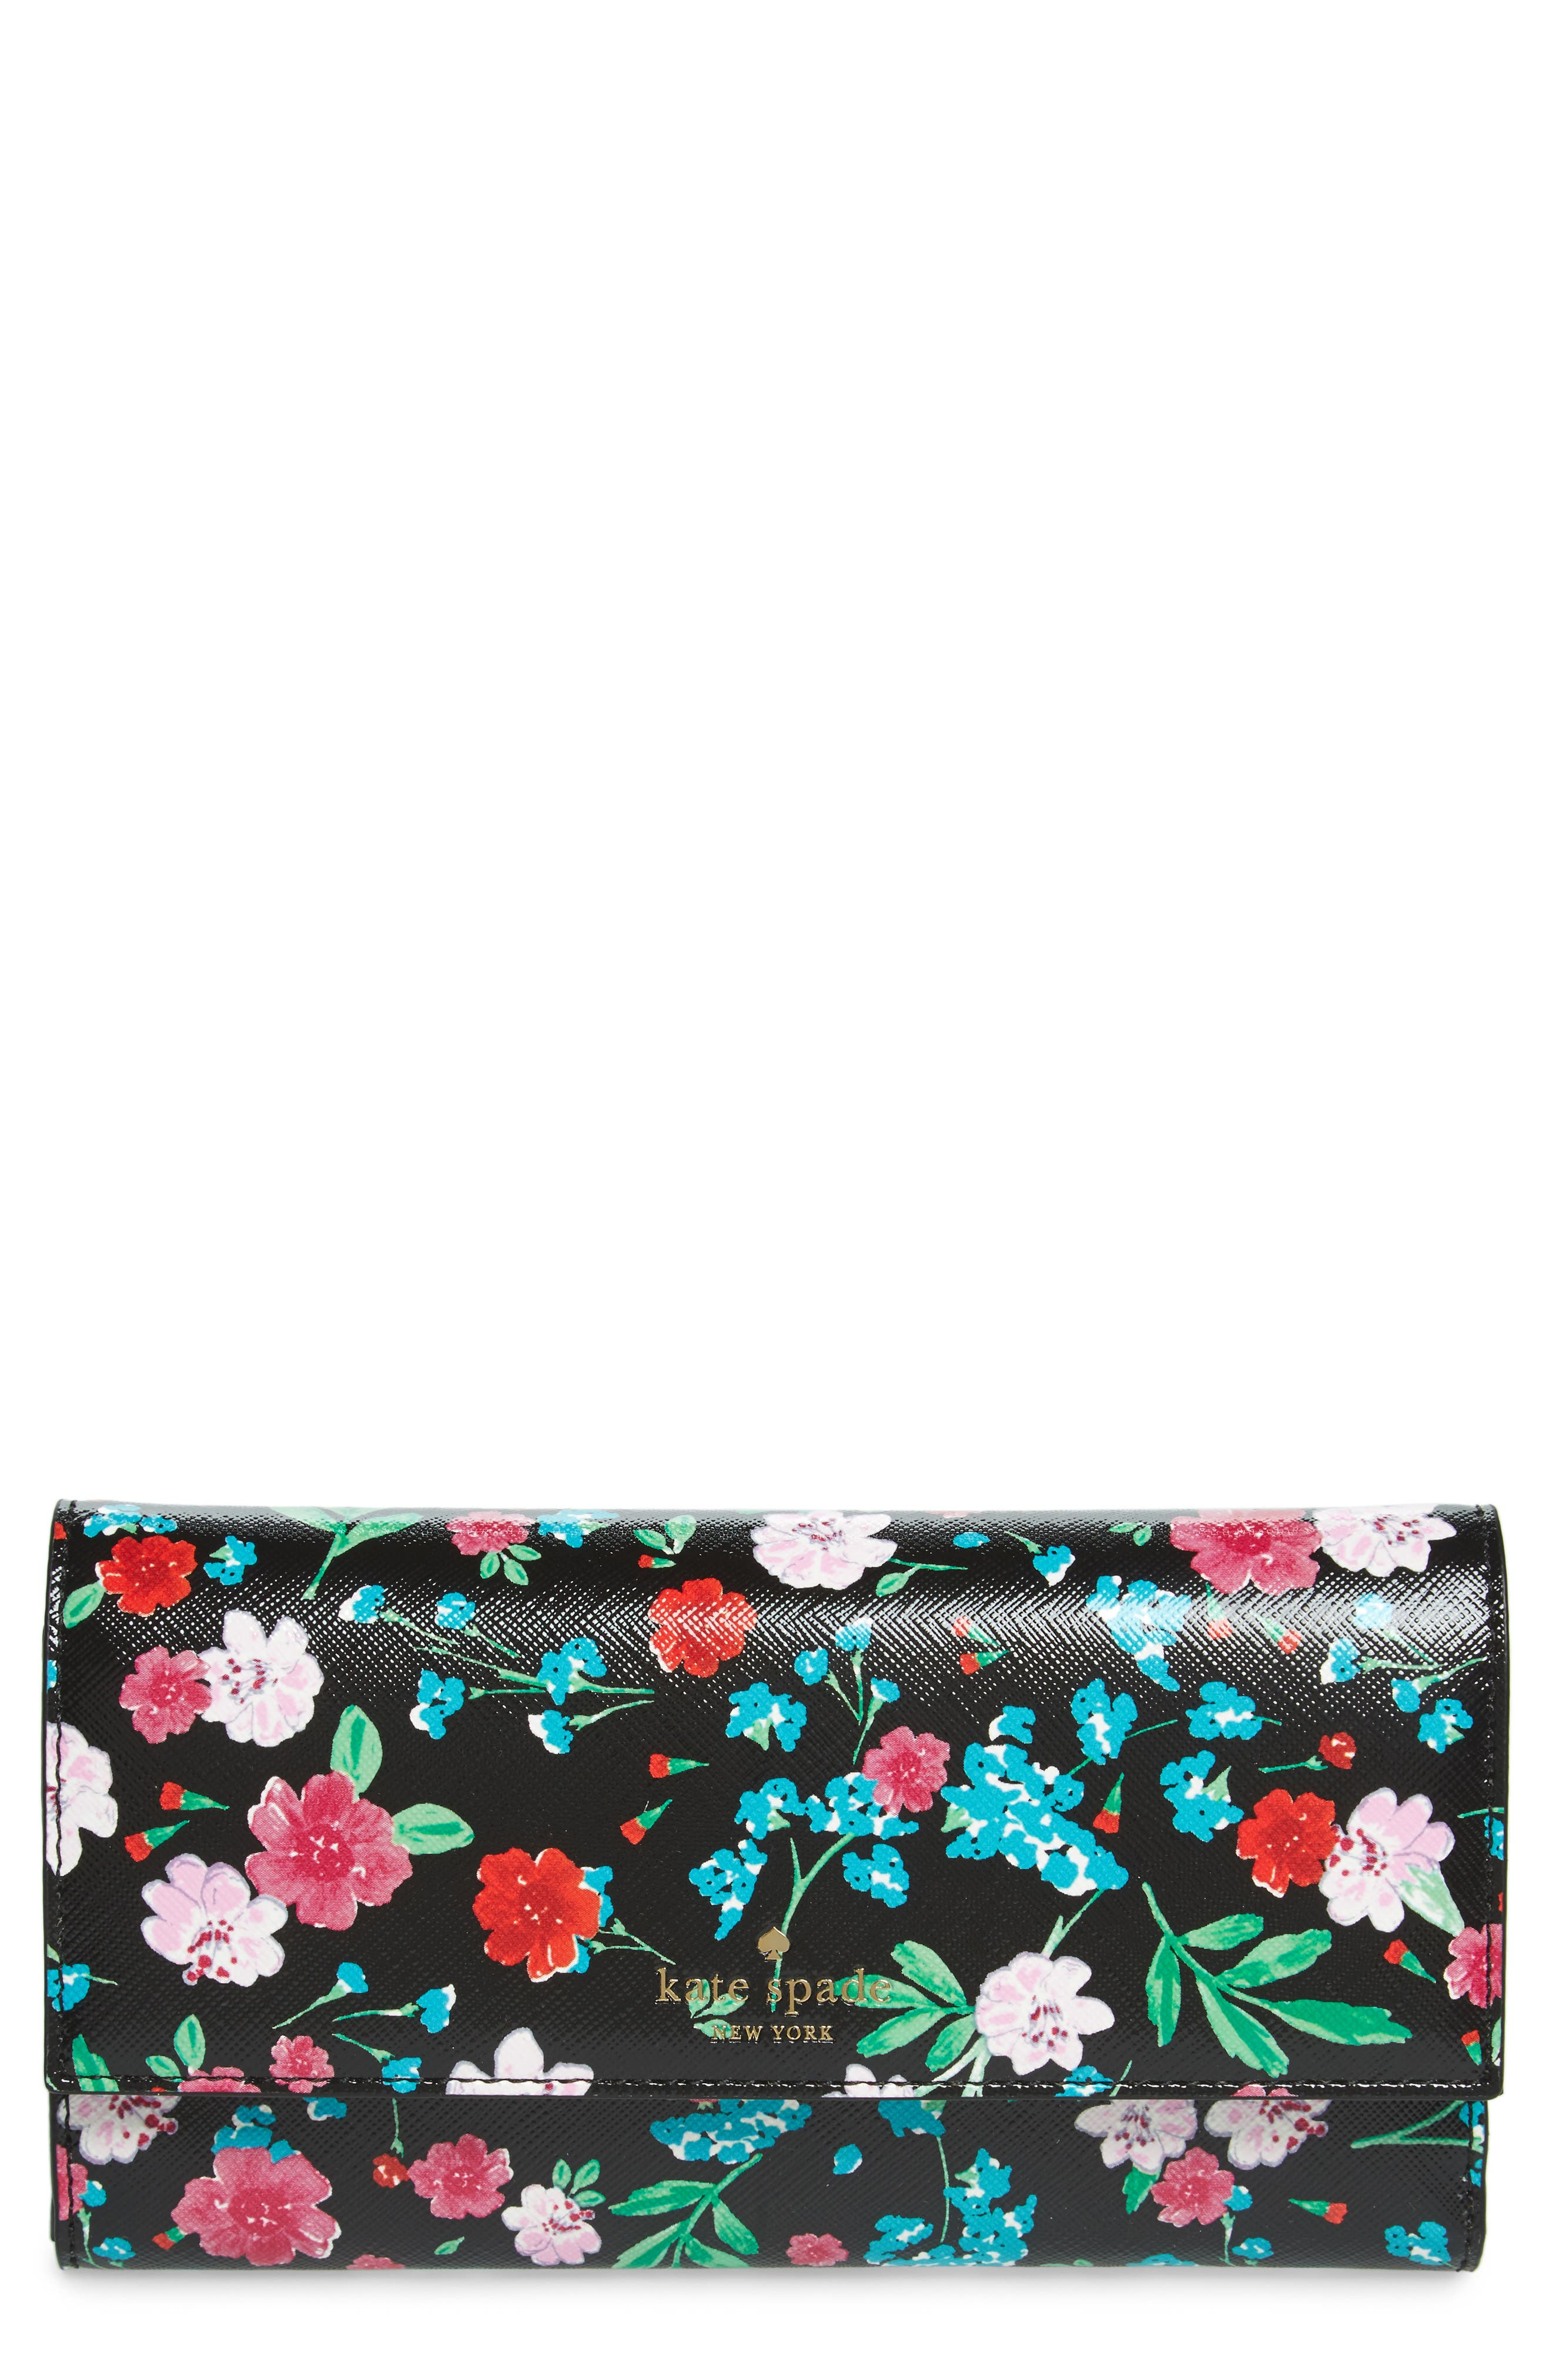 Main Image - kate spade new york greenhouse leather iPhone 7/8 wallet